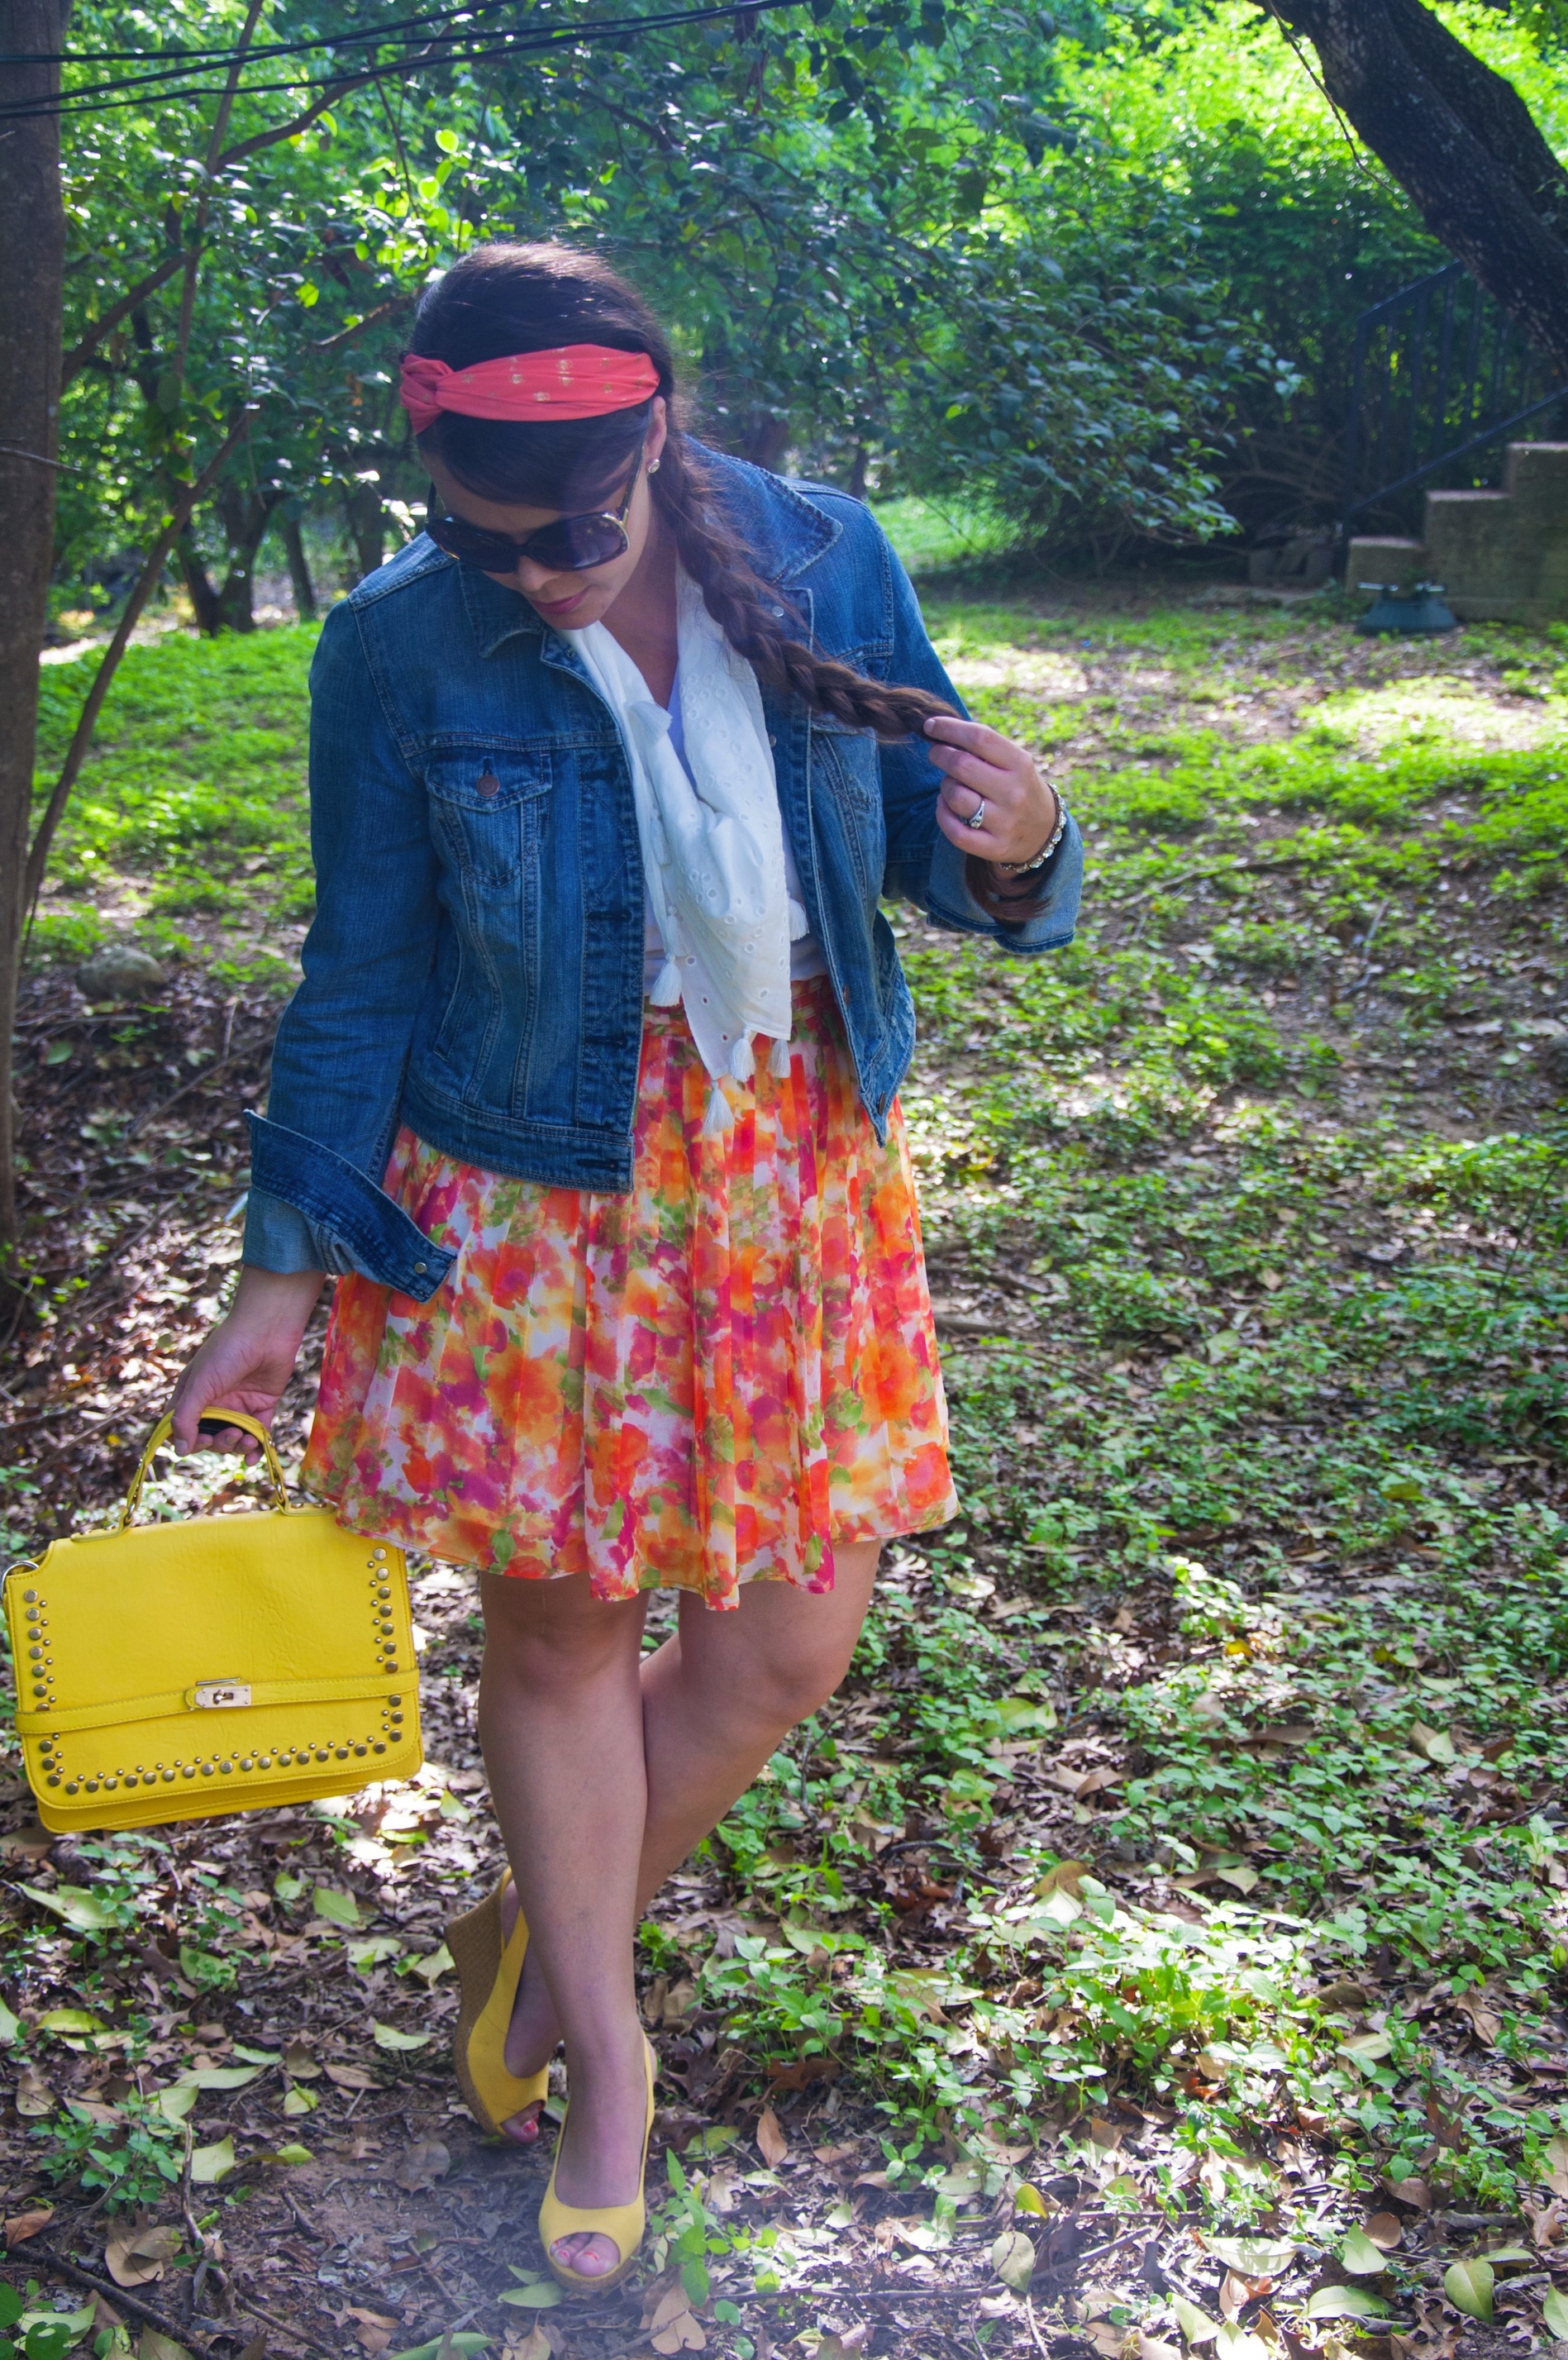 Floral skirt with denim jacket